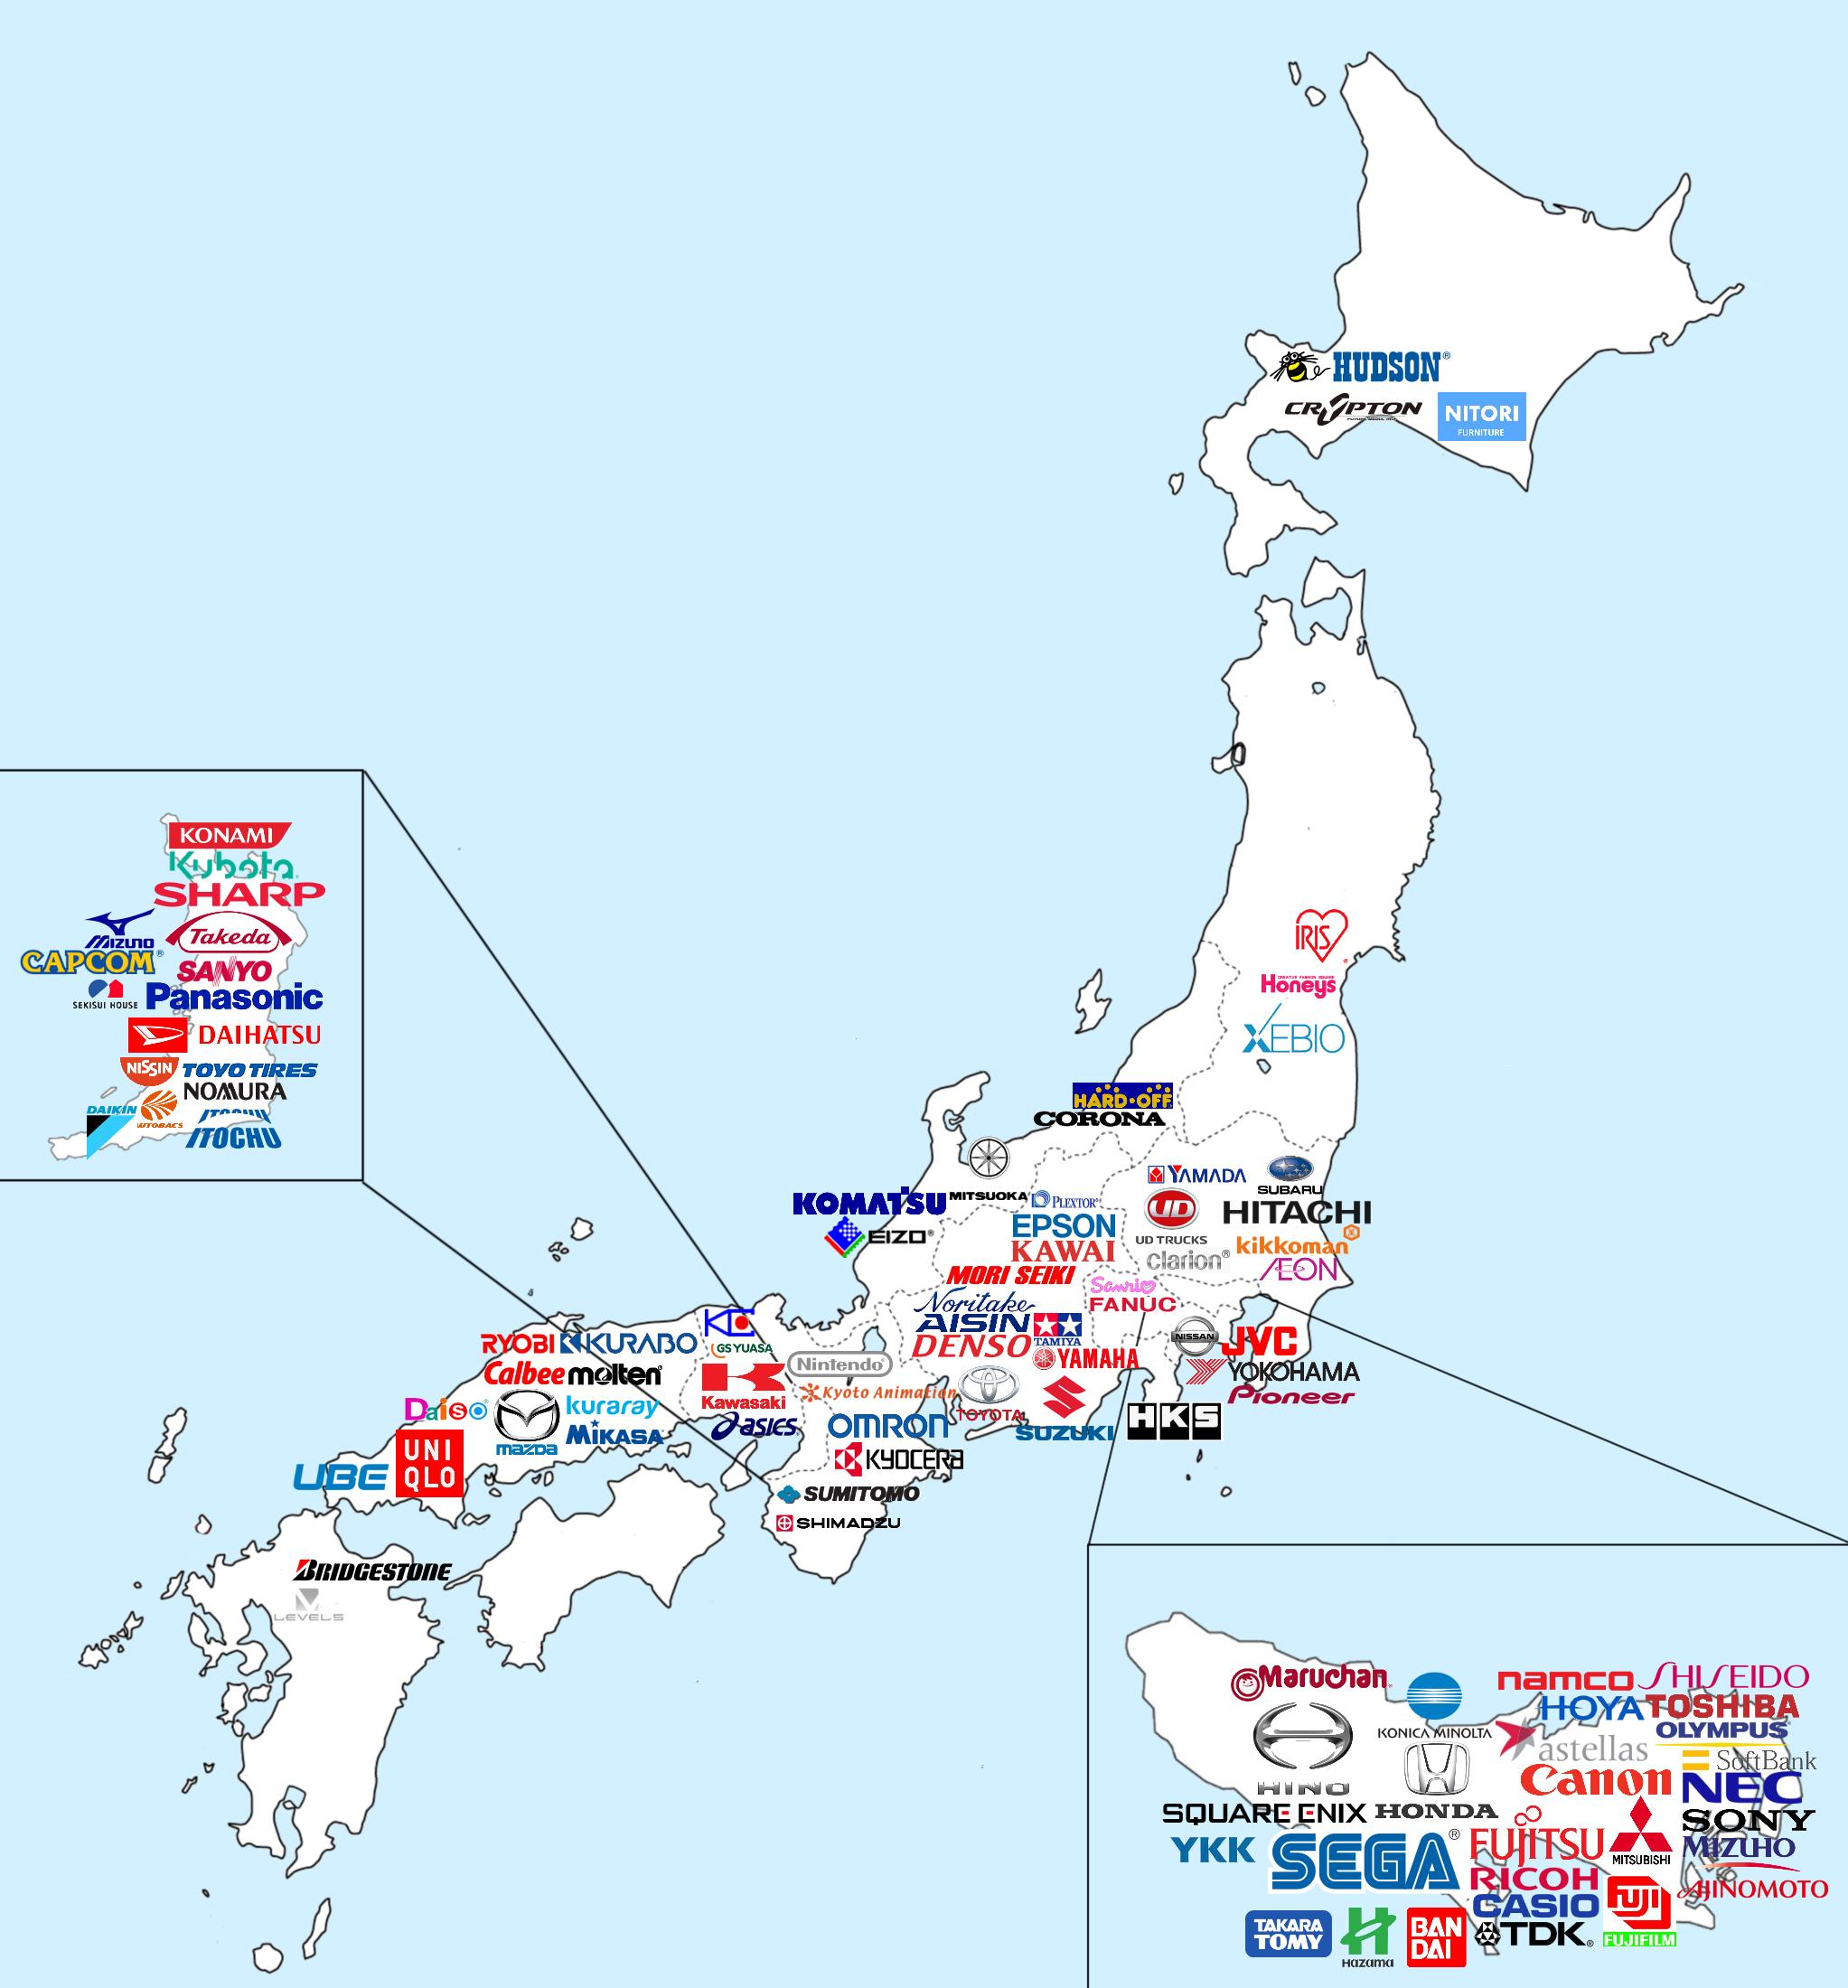 All Japanees brands